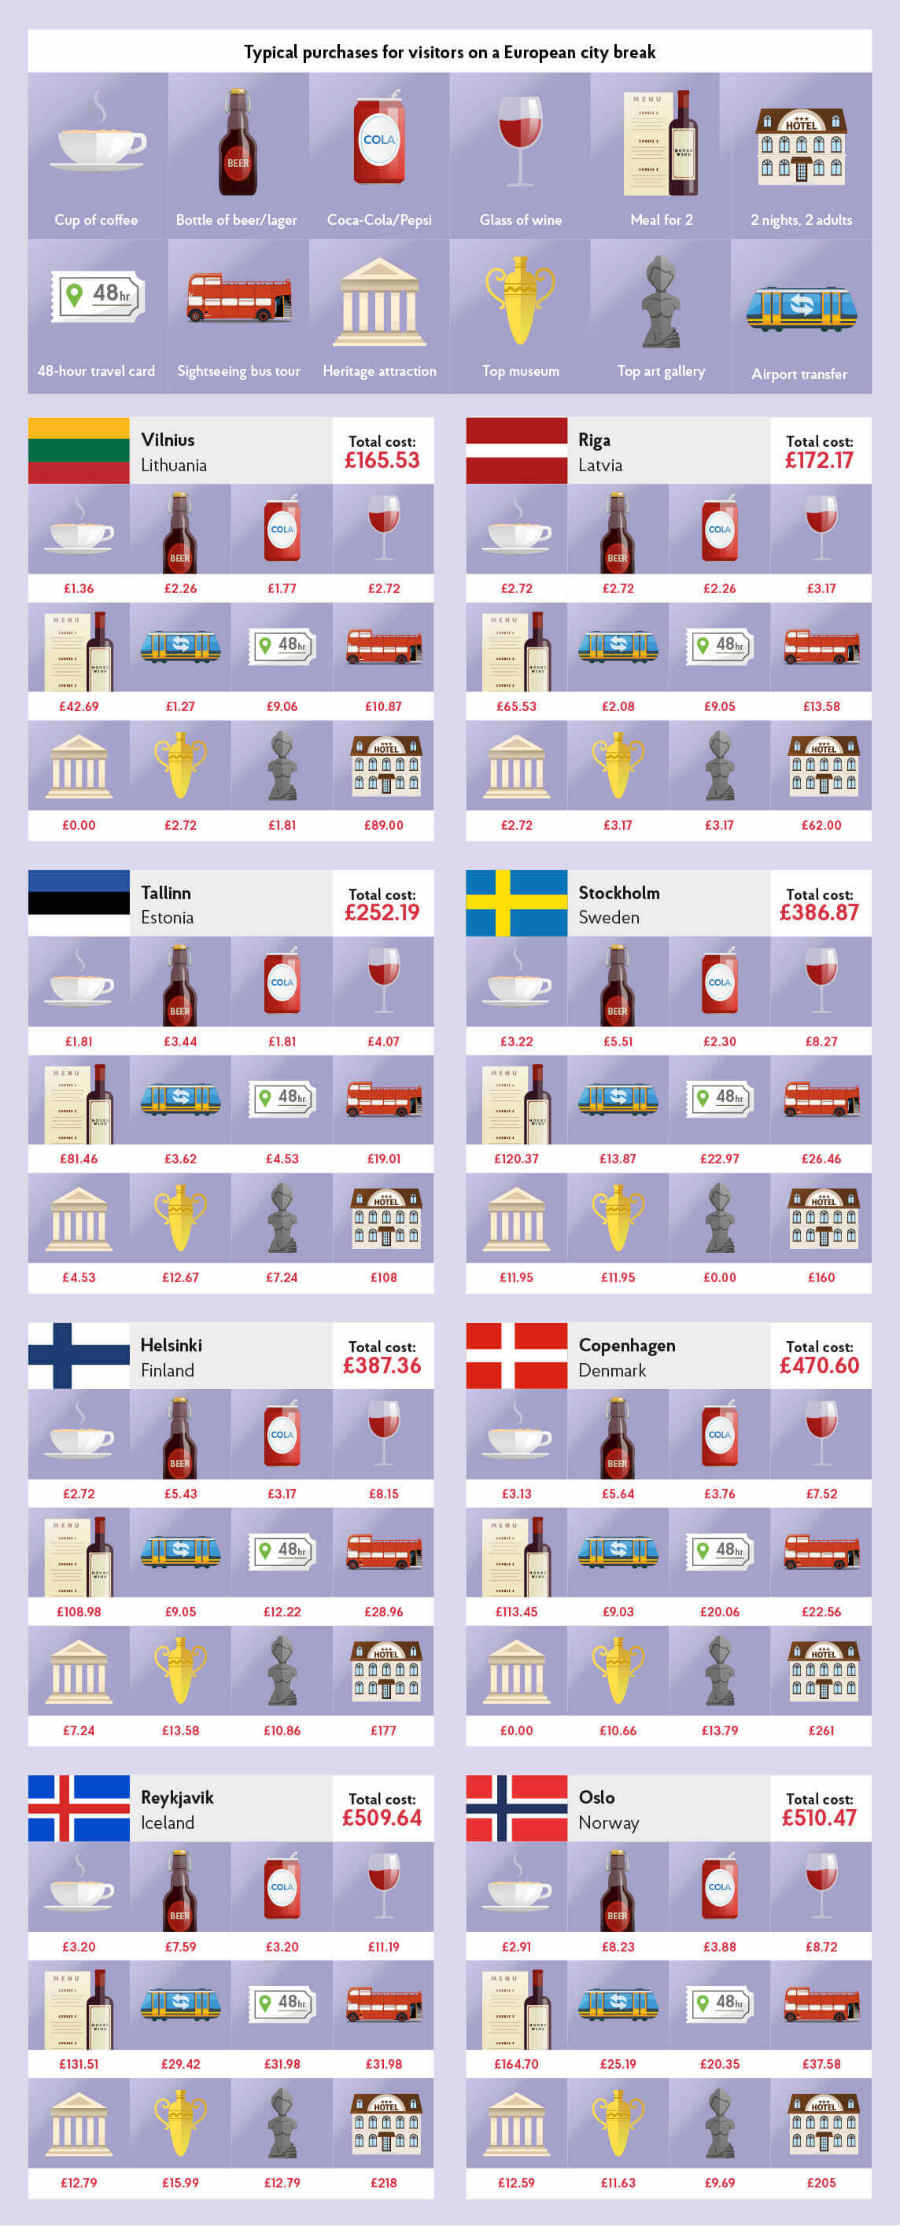 Typical cost of purchases for visitors on a Northern European city break in 2018